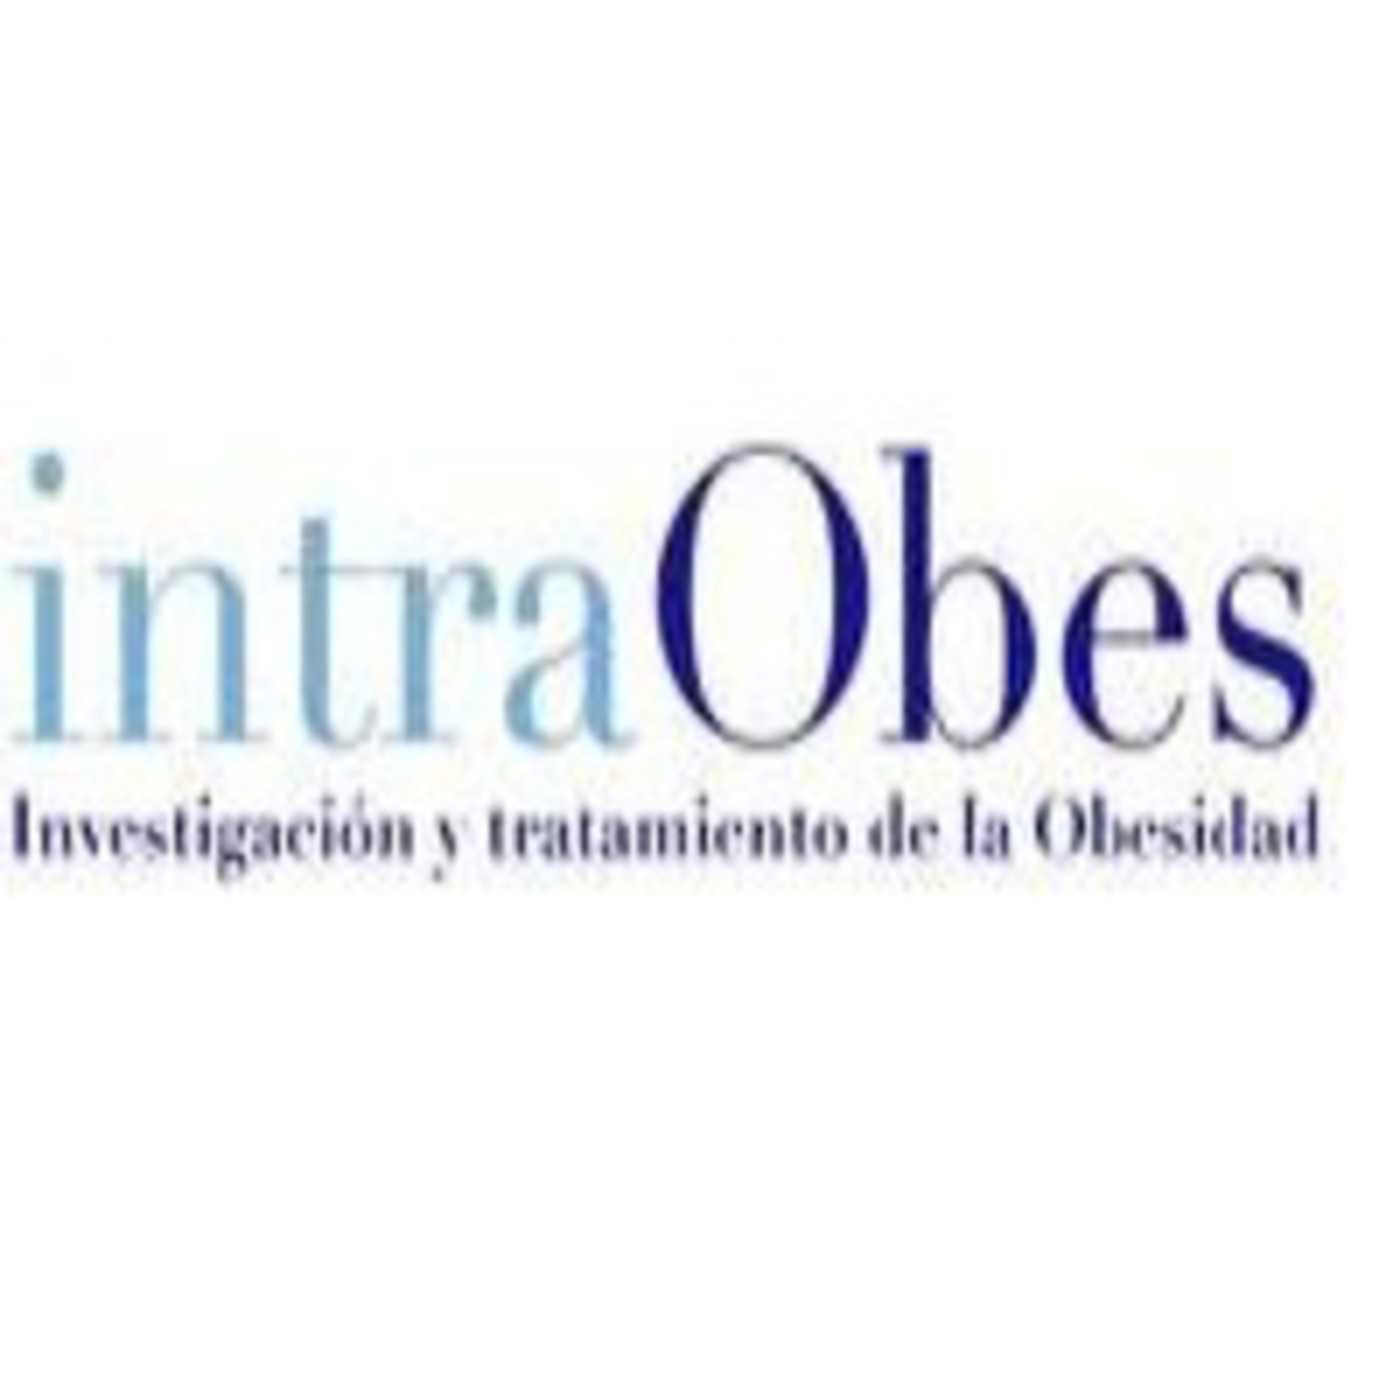 Podcast Intraobes